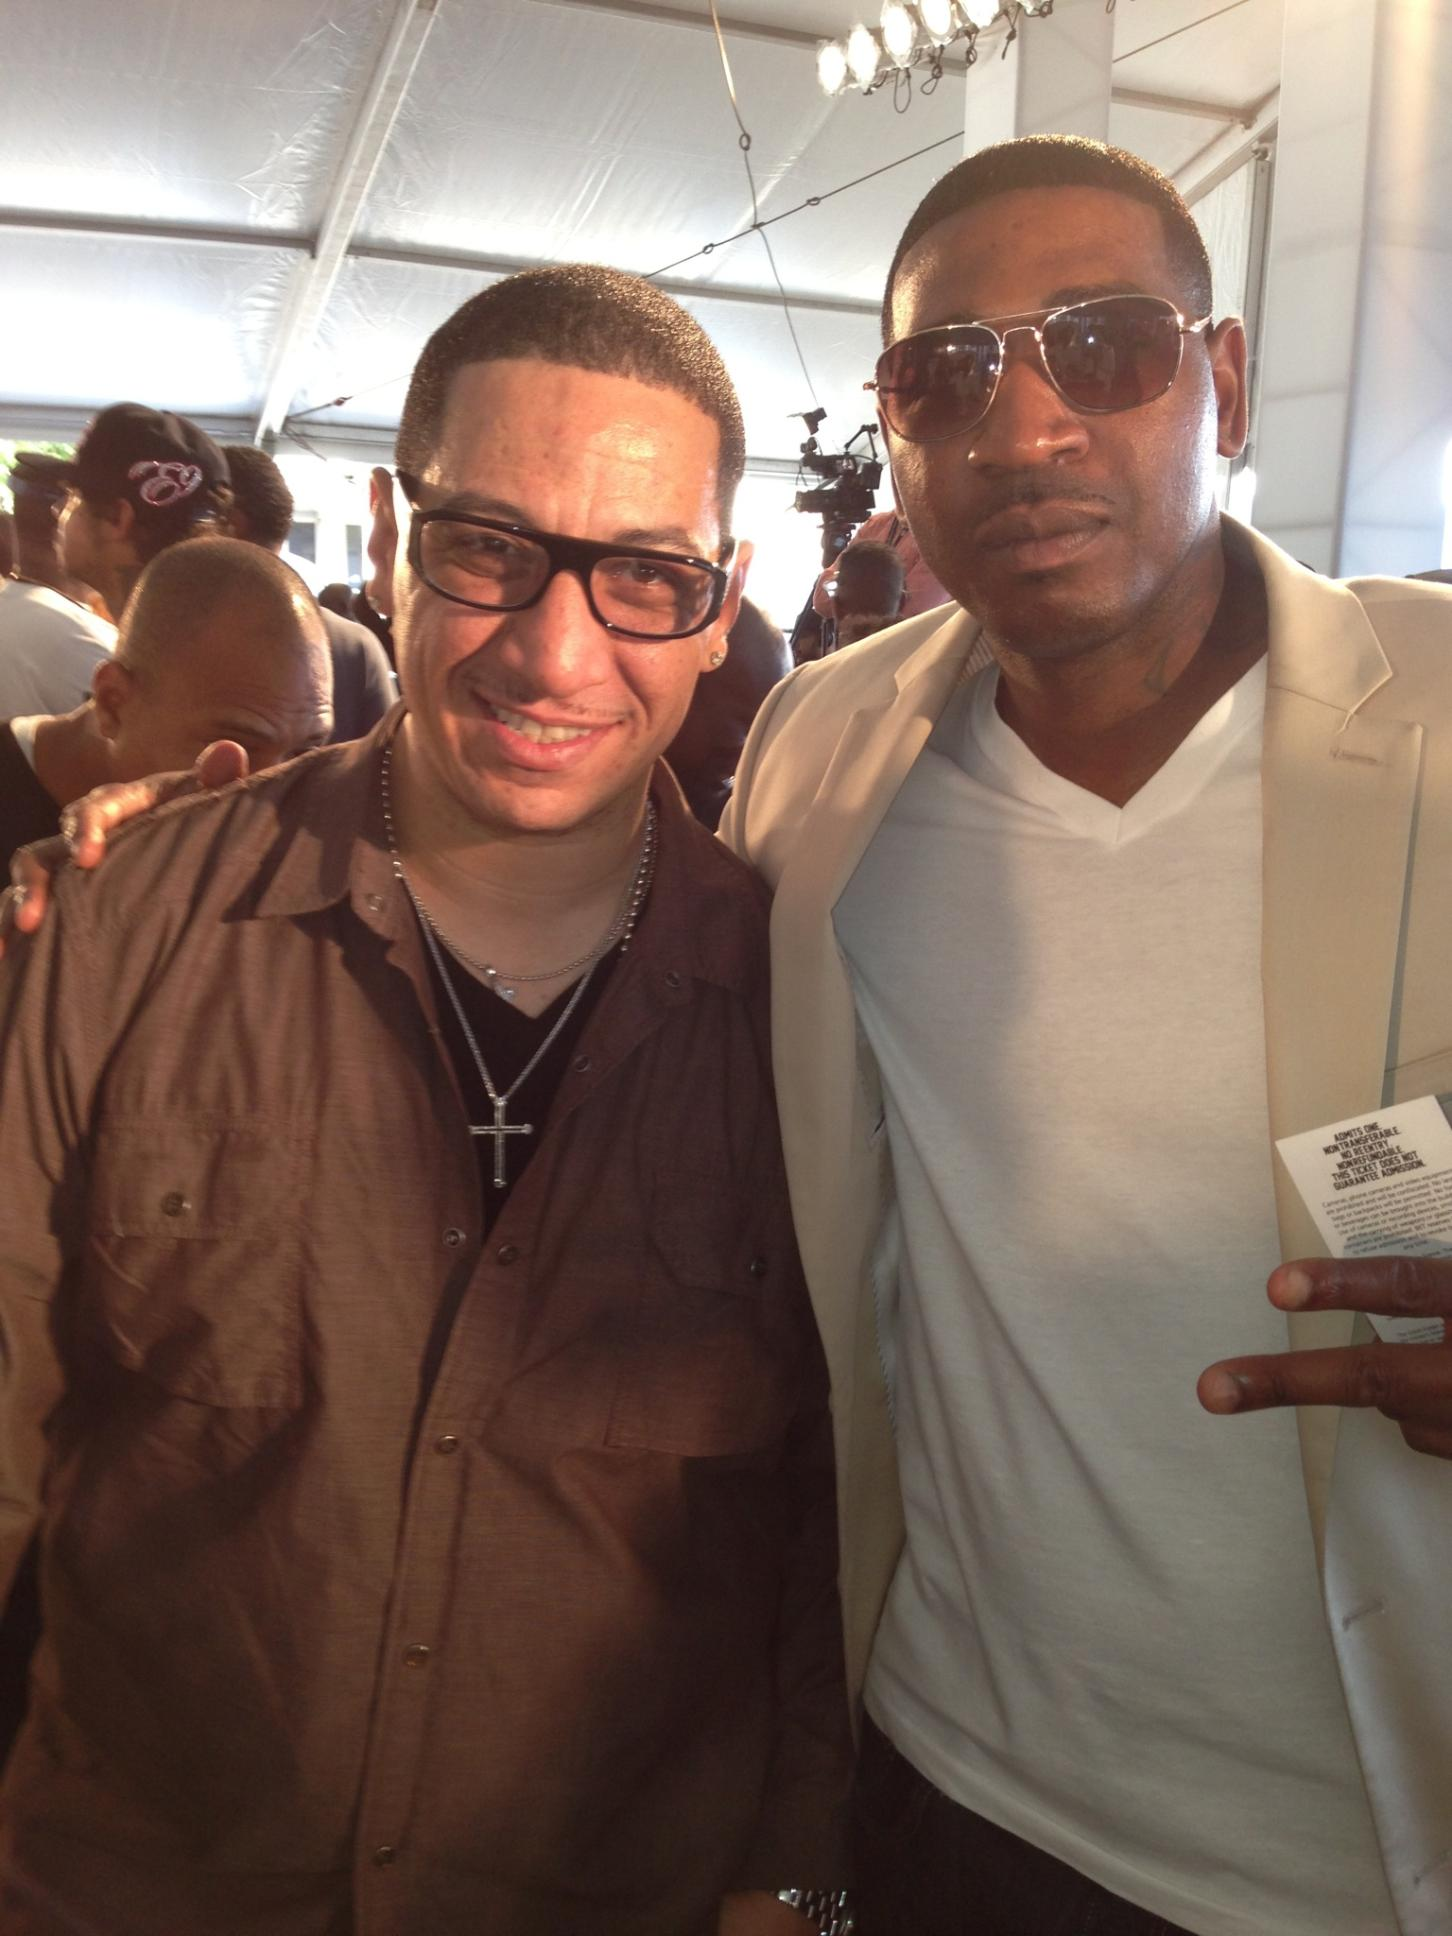 DJ Kid Capri and I on The Red Carpet @ The 2013 BET Awards